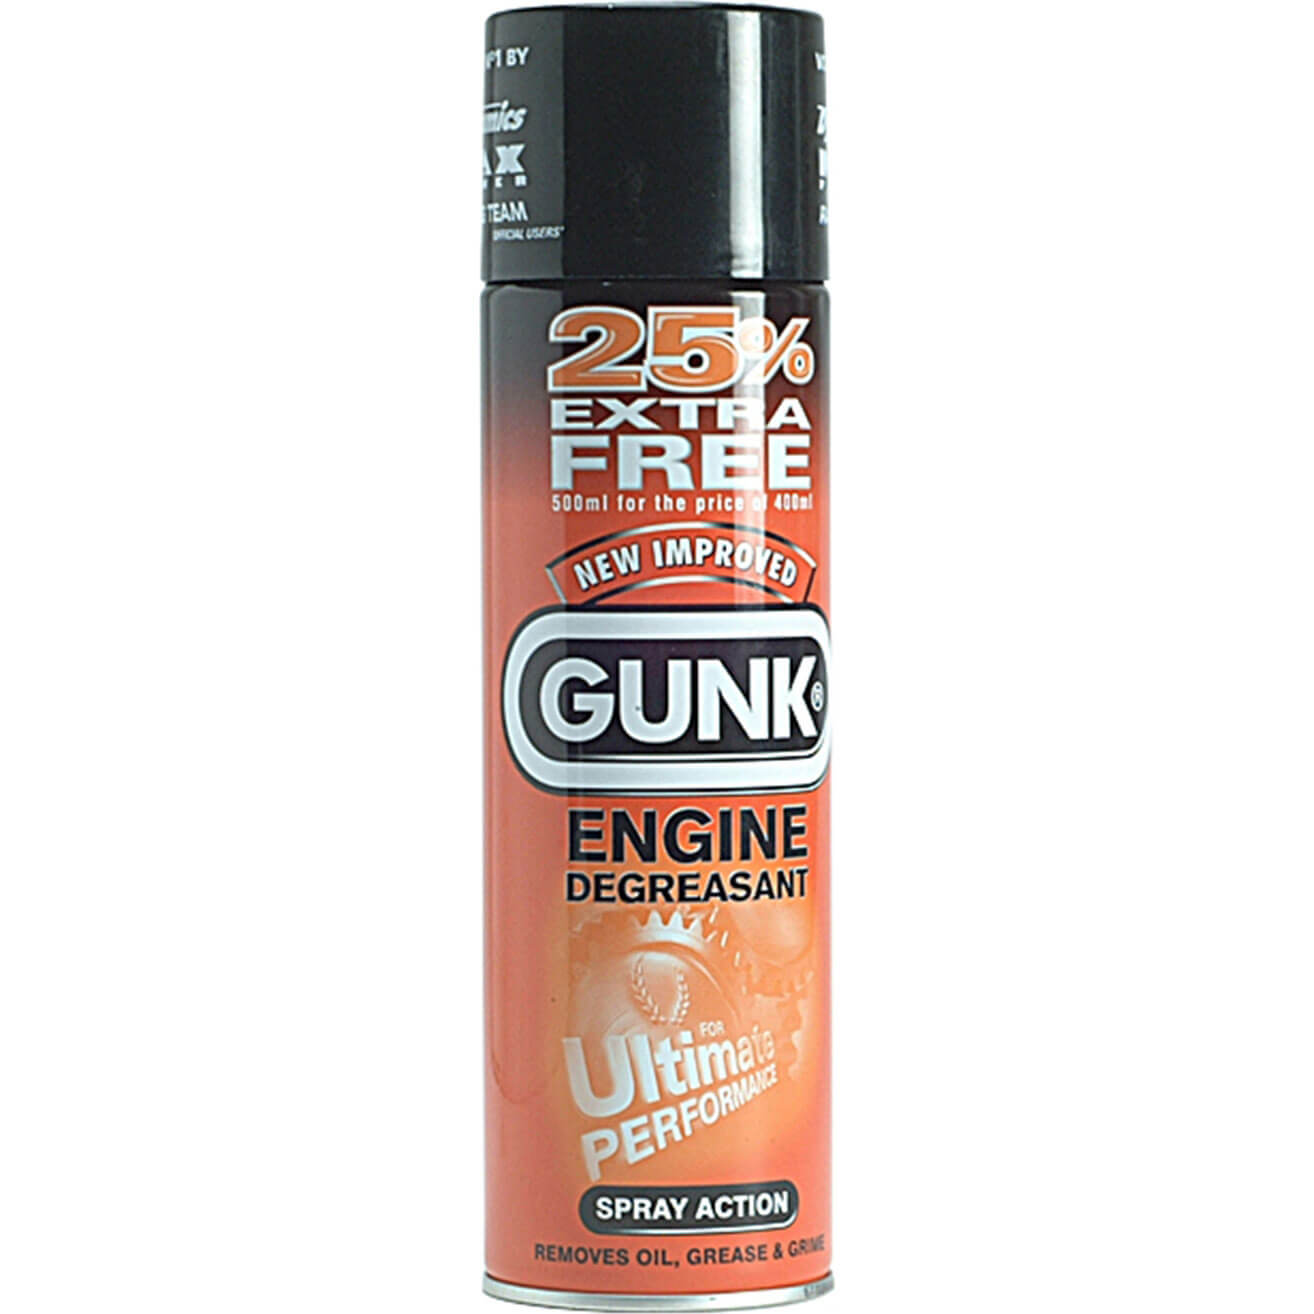 Image of Gunk Engine Degreasant Spray 500ml